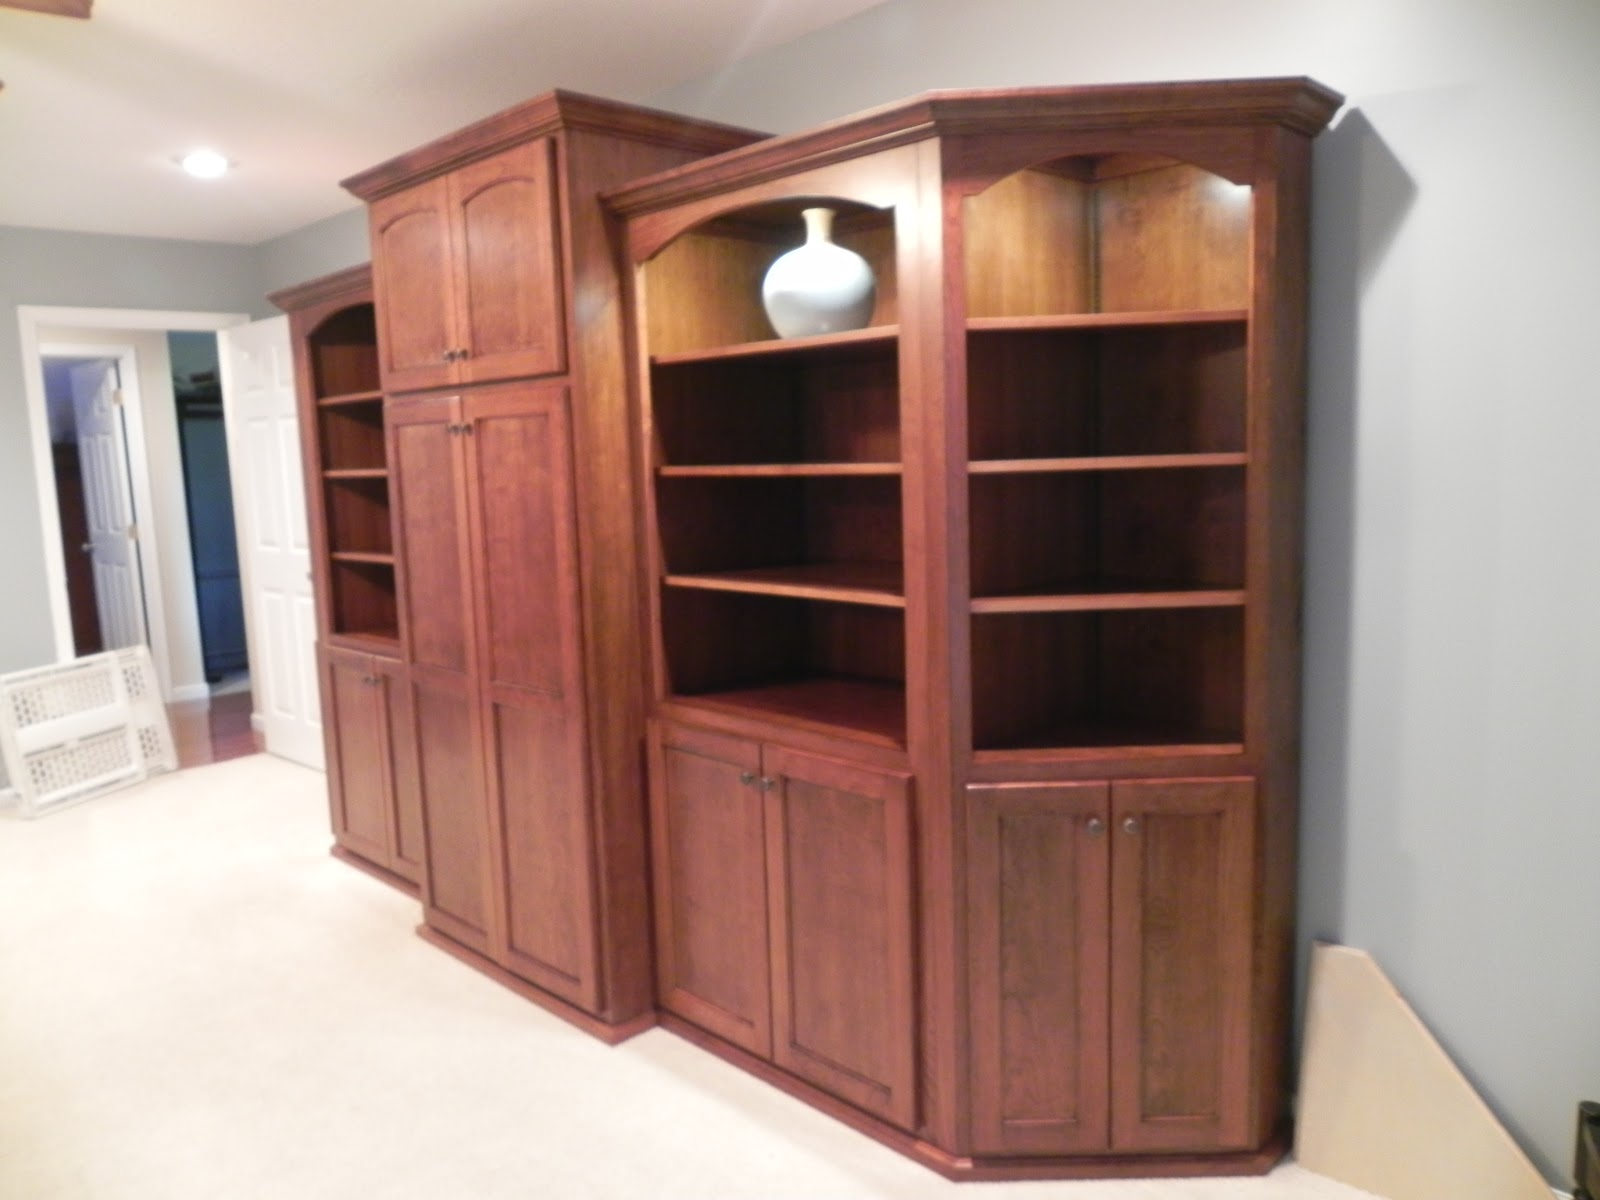 Adkisson's Cabinets: Cherry bookcases and Alder wood ...